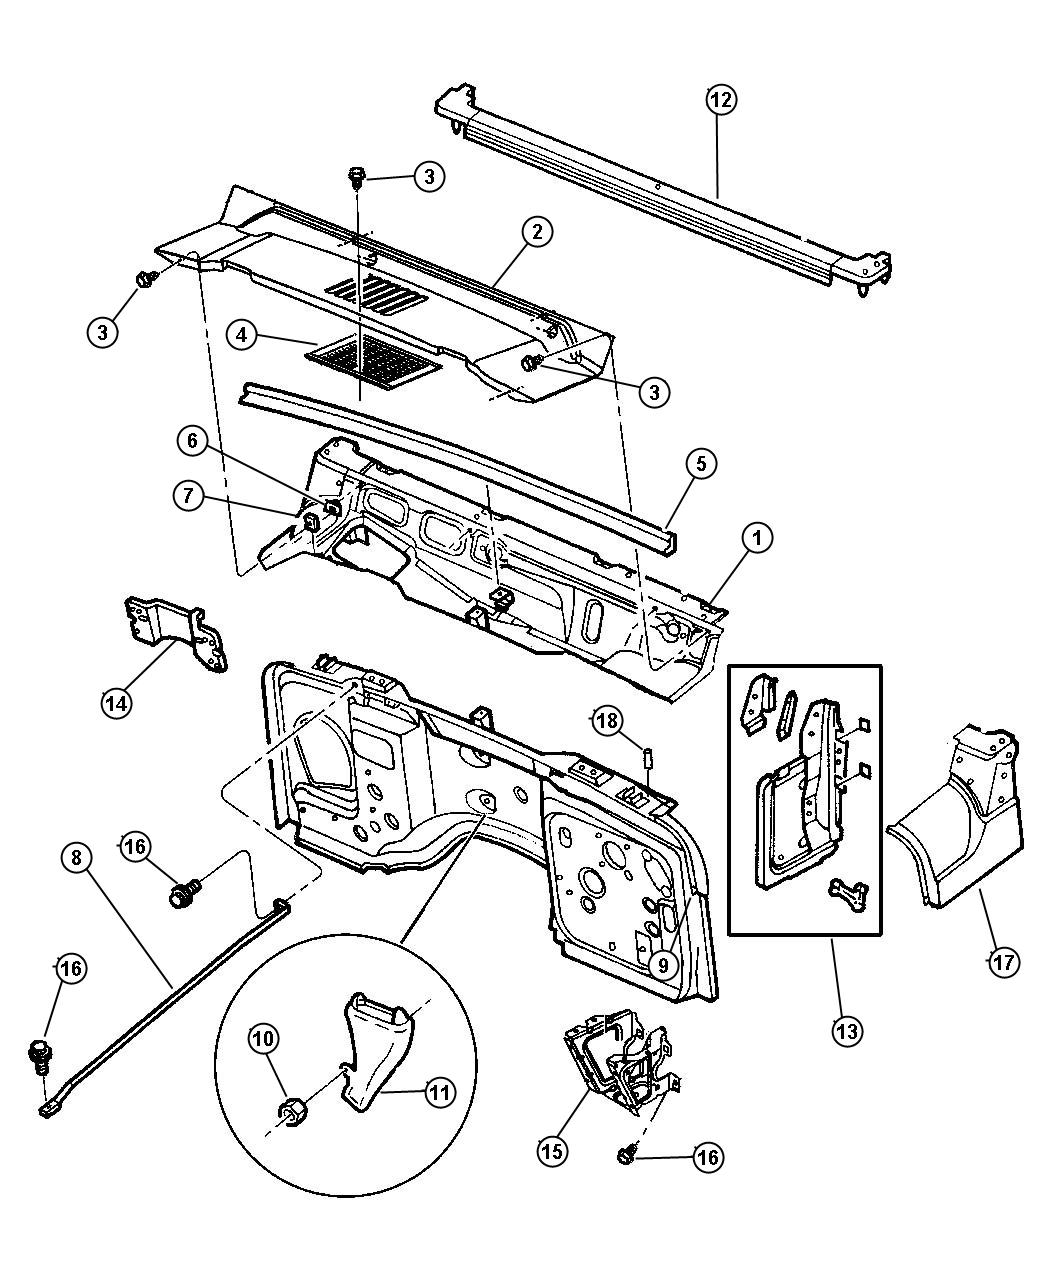 Jeep Wrangler Oem Parts Diagram Grille. Jeep. Auto Wiring